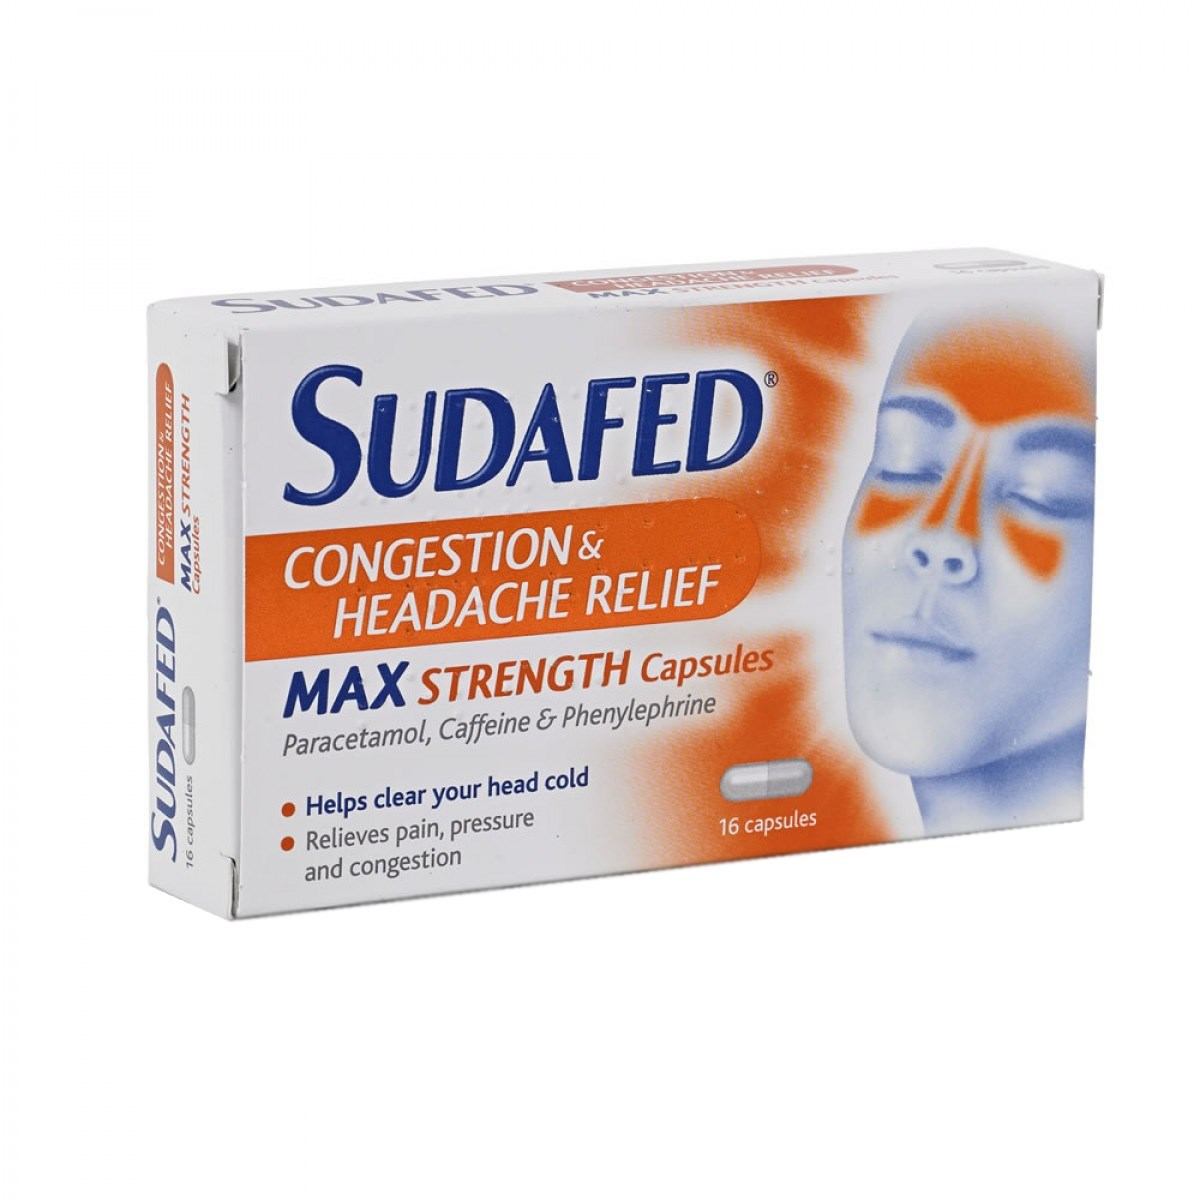 Sudafed Congestion & Headache Relief Max Strenght Capsules